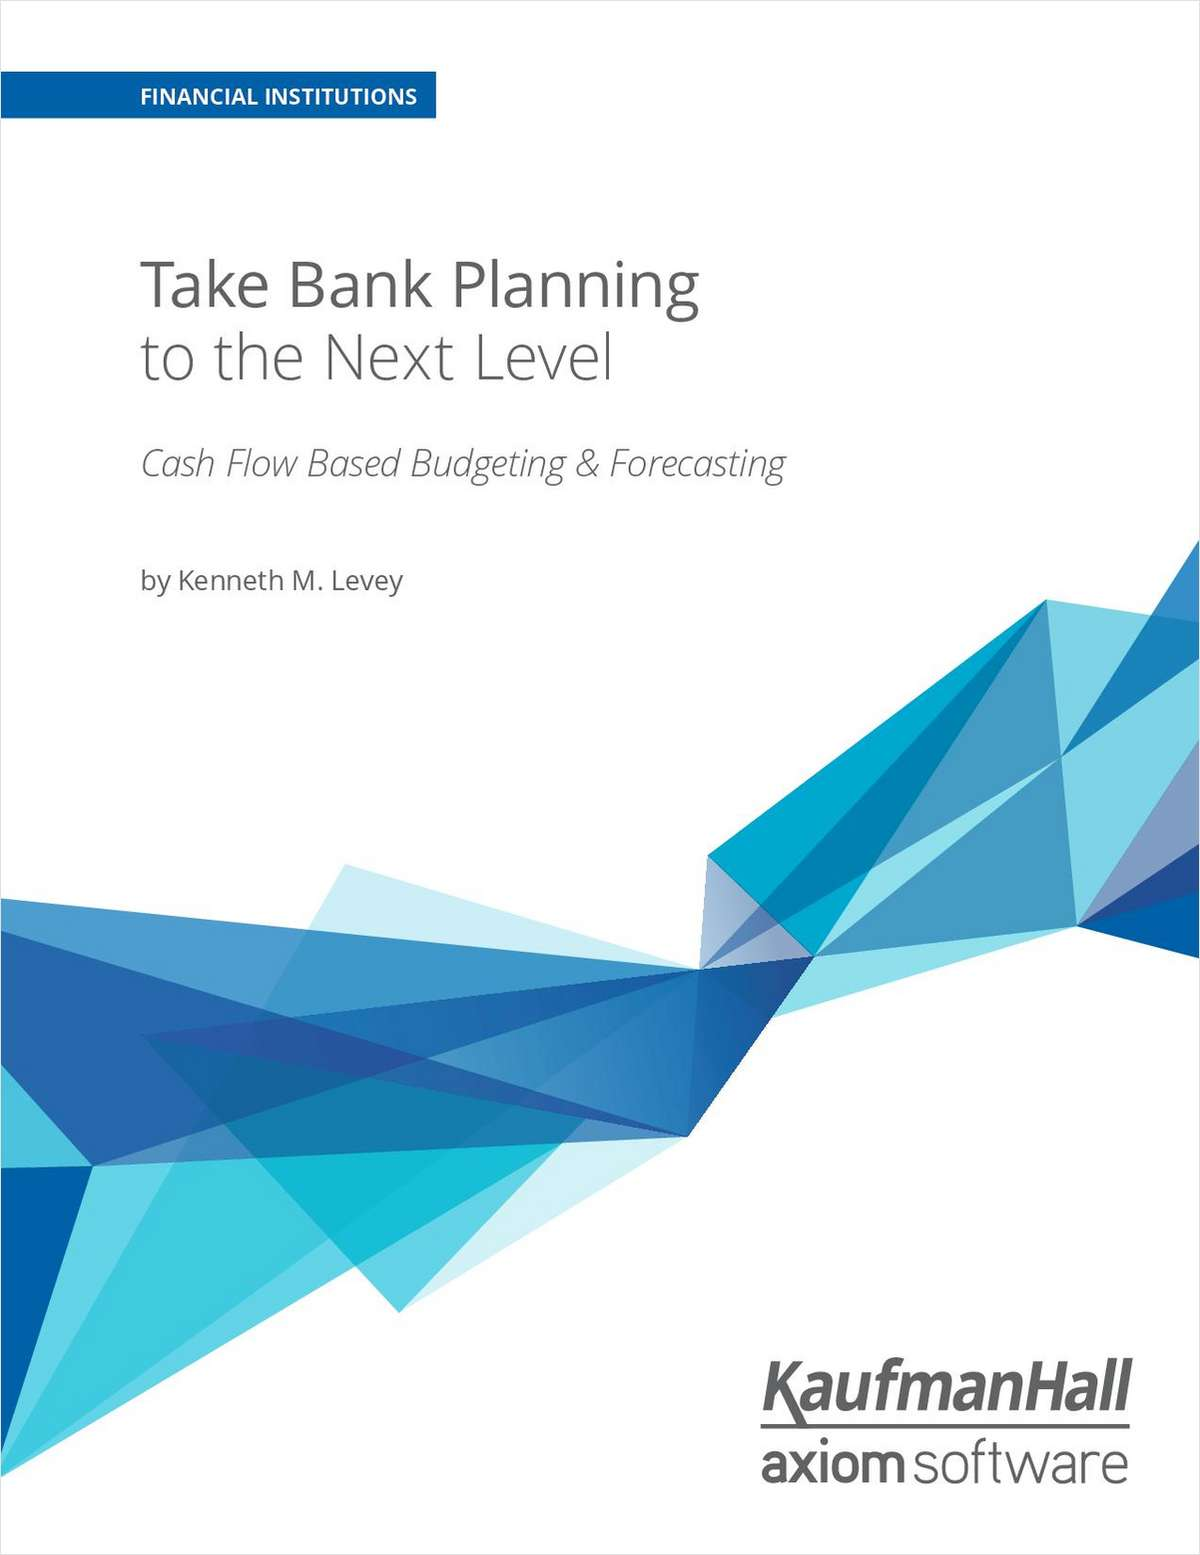 Take Credit Union Planning to the Next Level: Cash Flow Based Budgeting & Forecasting